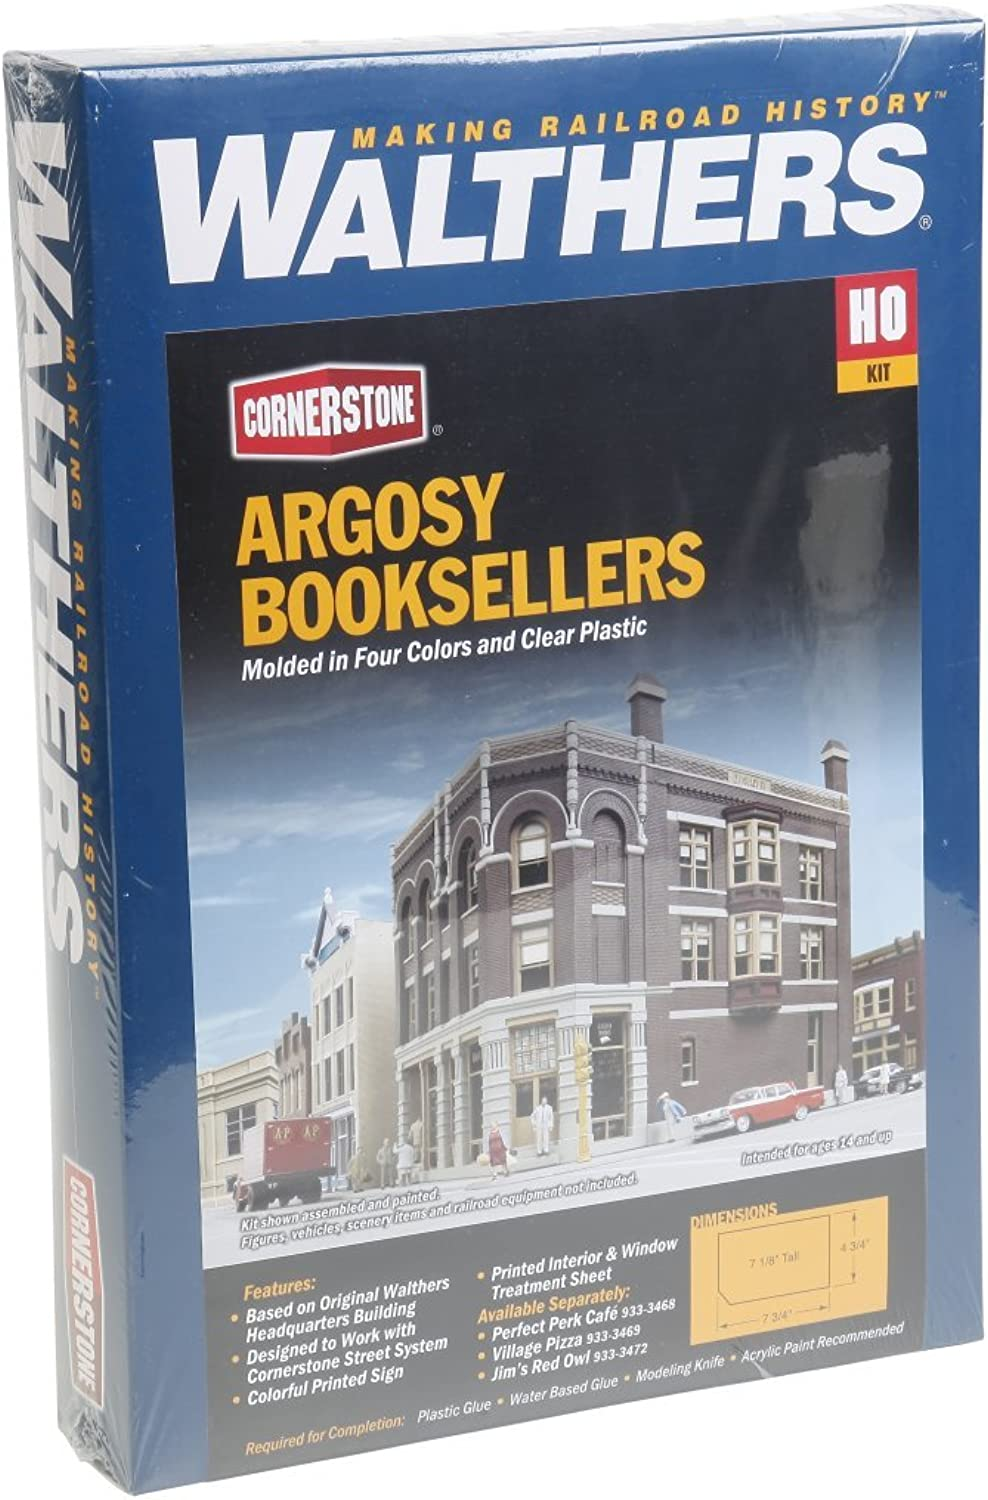 Walthers Cornerstone 9333466 Argosy Booksellers